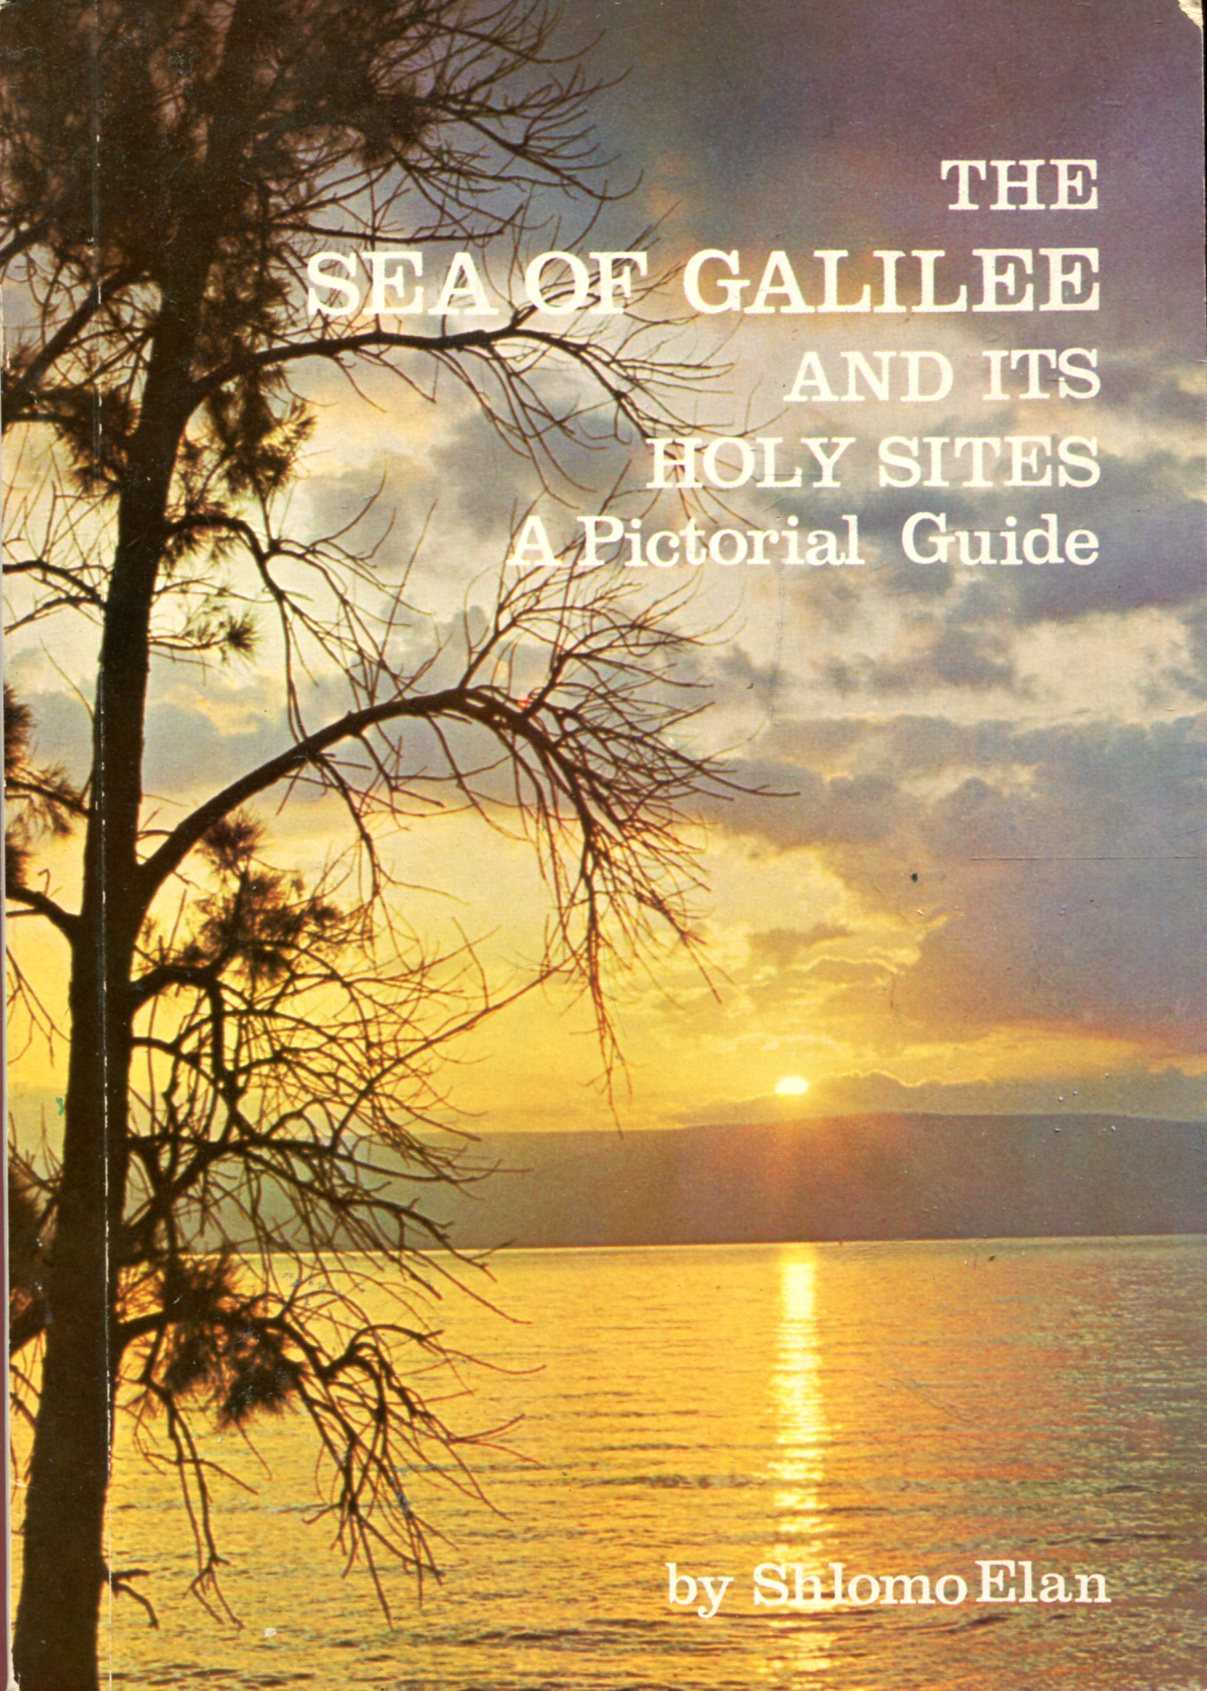 Image for The Sea of Galilee and its Holy Sites, a pictorial guide